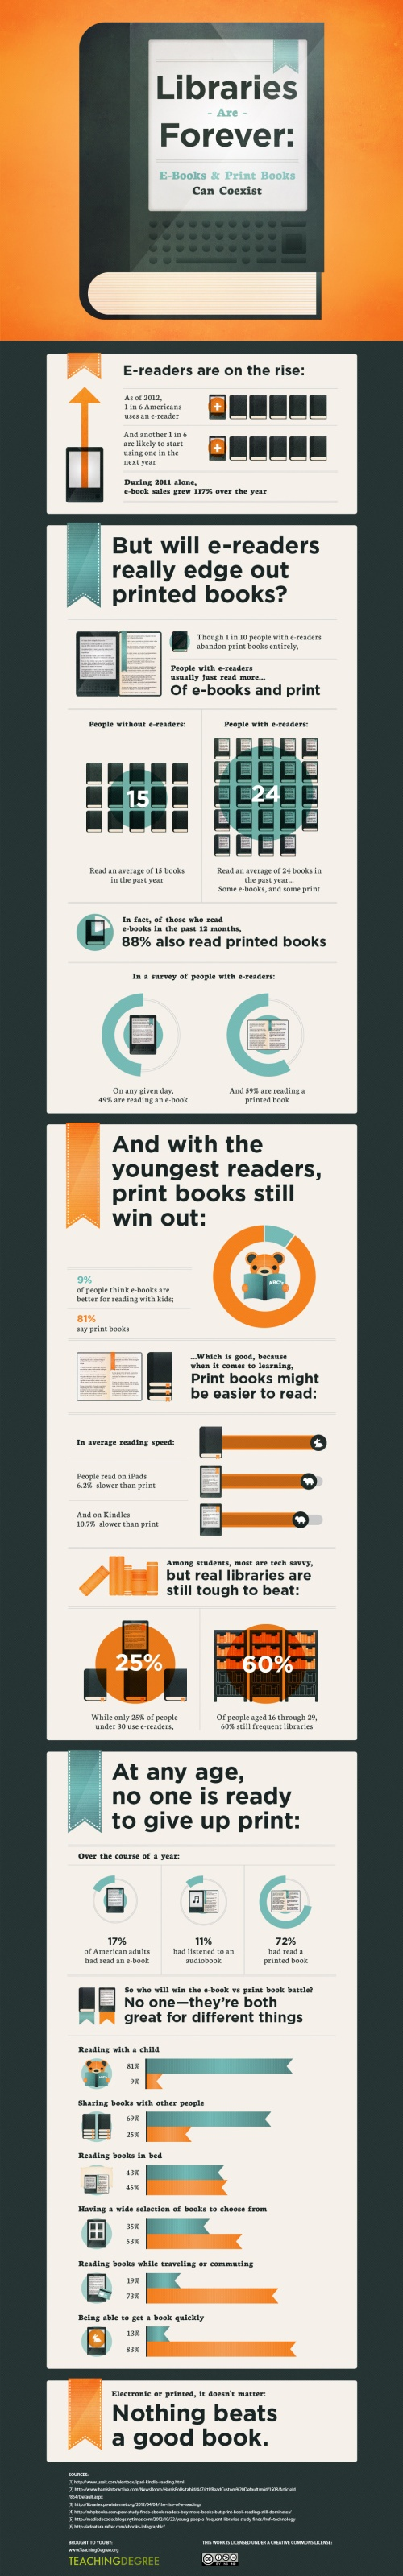 13 best chapters in action images on pinterest action honor ebooks e bibliotecas podem coexistir infogrfico fandeluxe Gallery